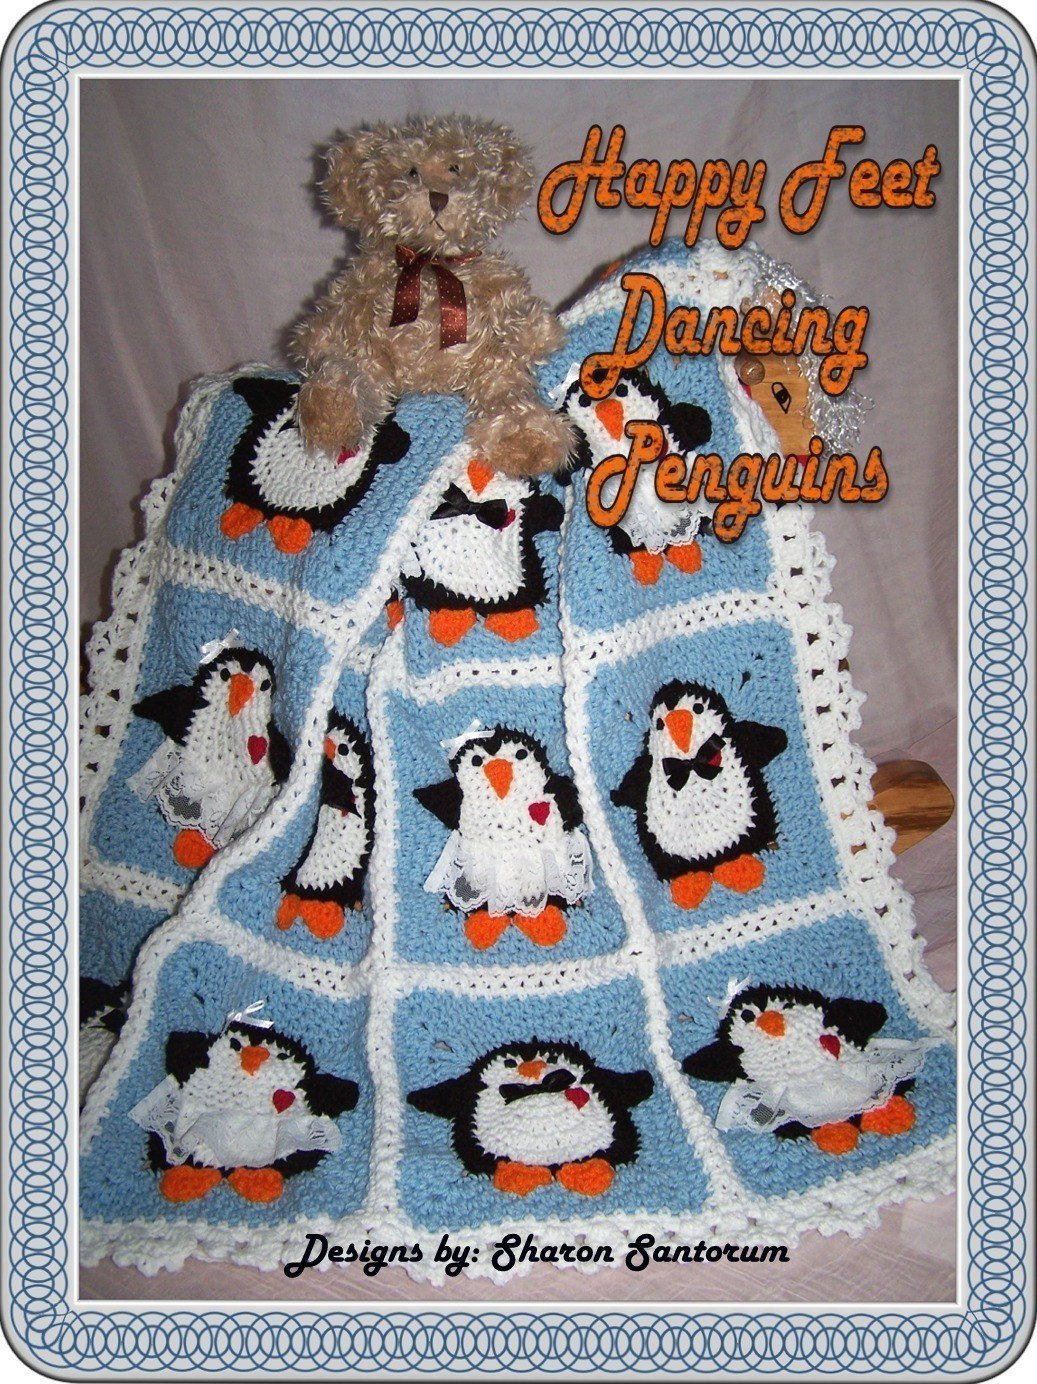 Baby Boy Crochet Blanket Patterns Beautiful Dancing Penguins Crochet Baby Afghan or Blanket Pattern Pdf Of Baby Boy Crochet Blanket Patterns Lovely Navy and Teal for A Baby Boy